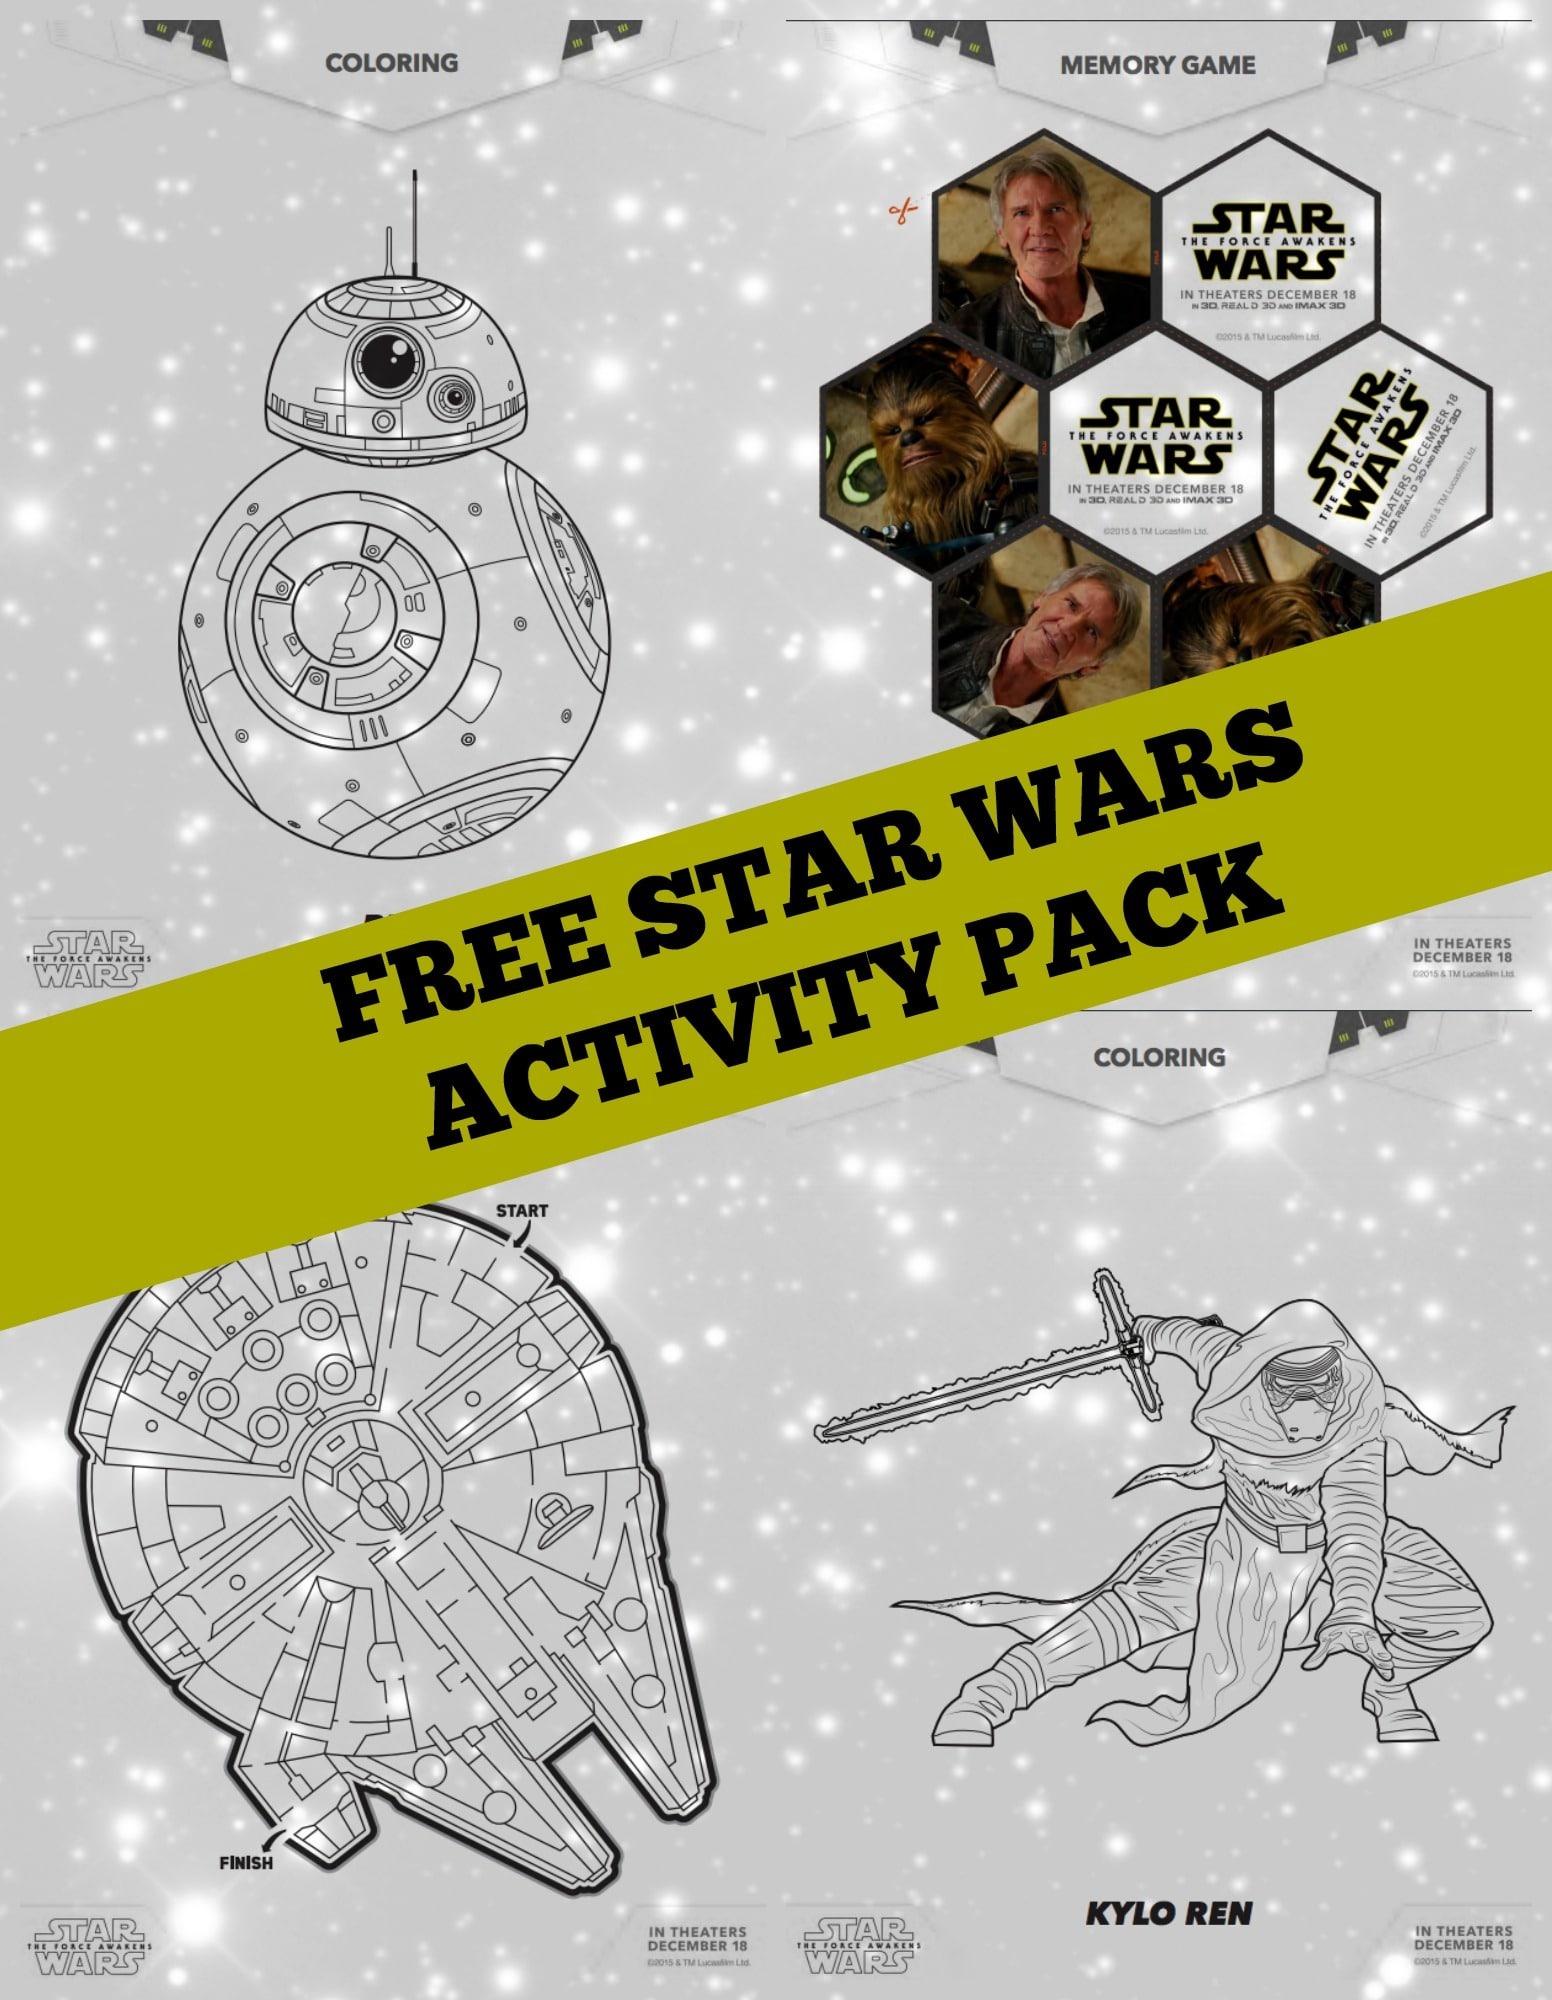 Free Star Wars The Force Awakens Coloring Pages and Activity Sheets